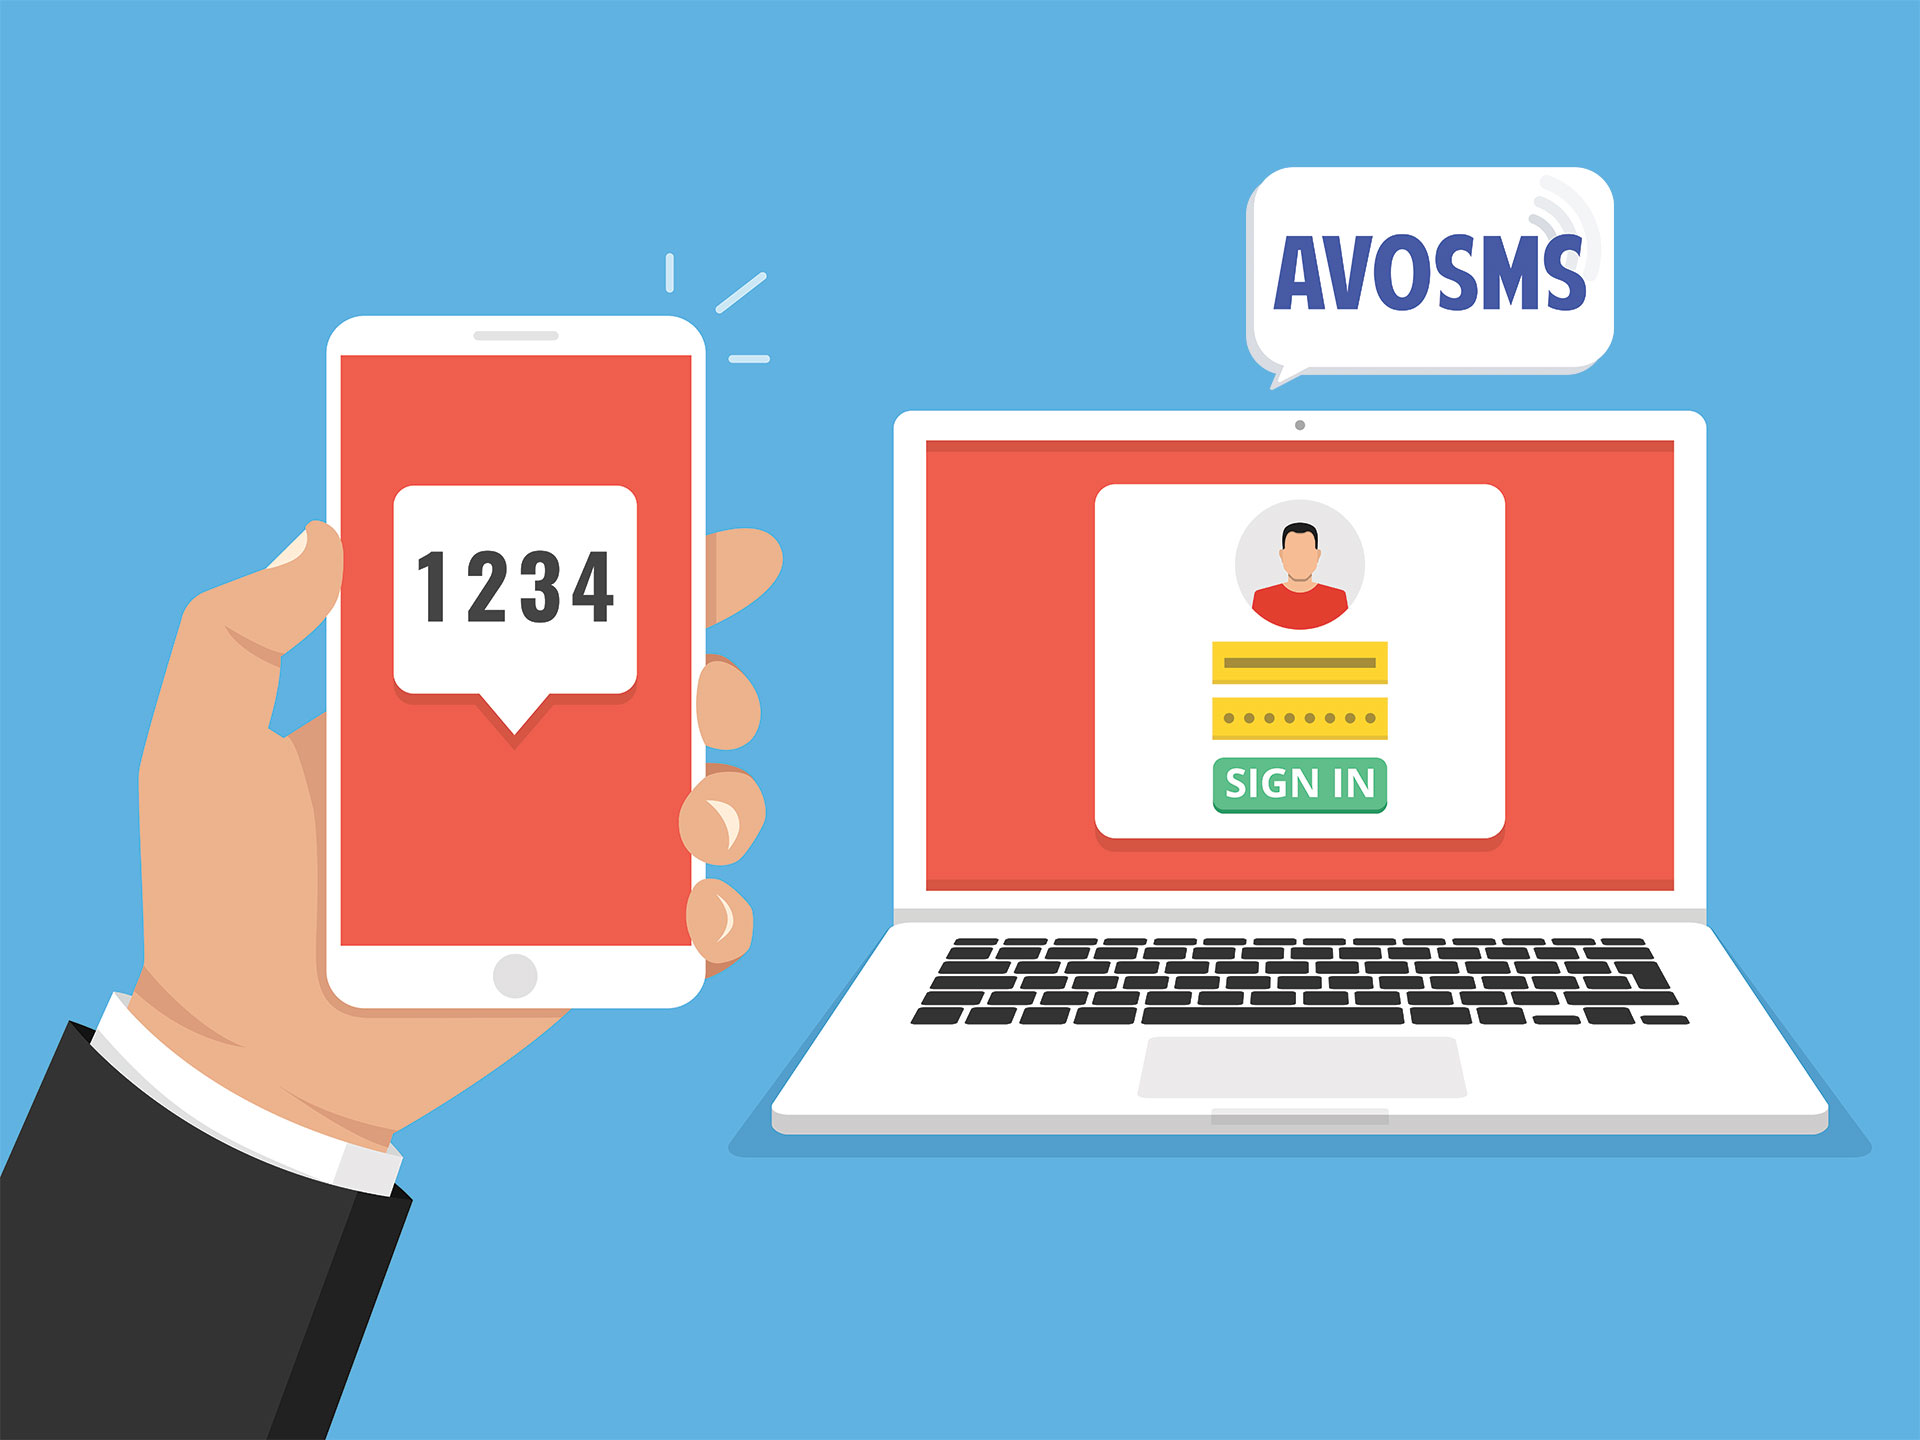 AvoSMS : Authentification SMS, validation, vérification numéro mobile